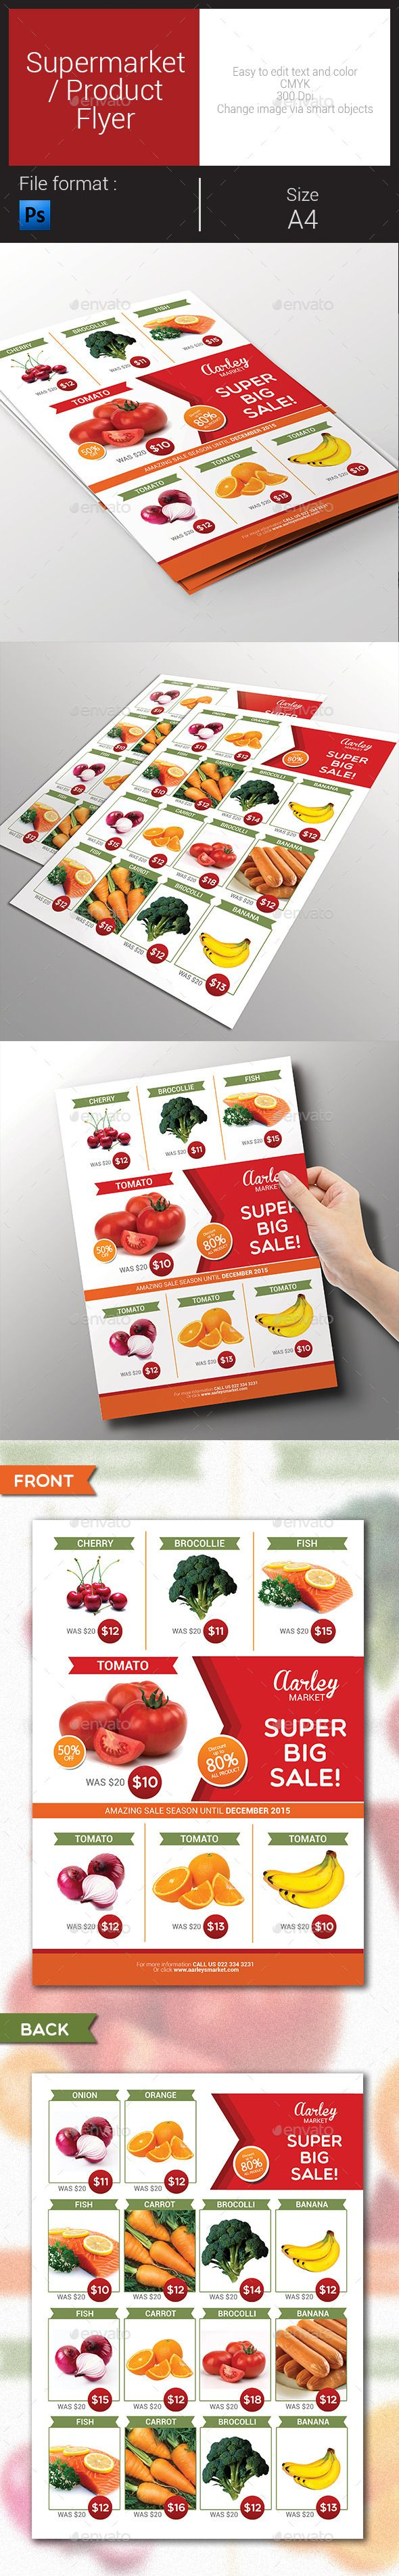 Supermarket / Product Flyer Template PSD | Buy and Download: http://graphicriver.net/item/supermarket-product-flyer/9164447?WT.oss_phrase=&WT.oss_rank=199&WT.z_author=arifpoernomo&WT.ac=search_thumb&ref=ksioks